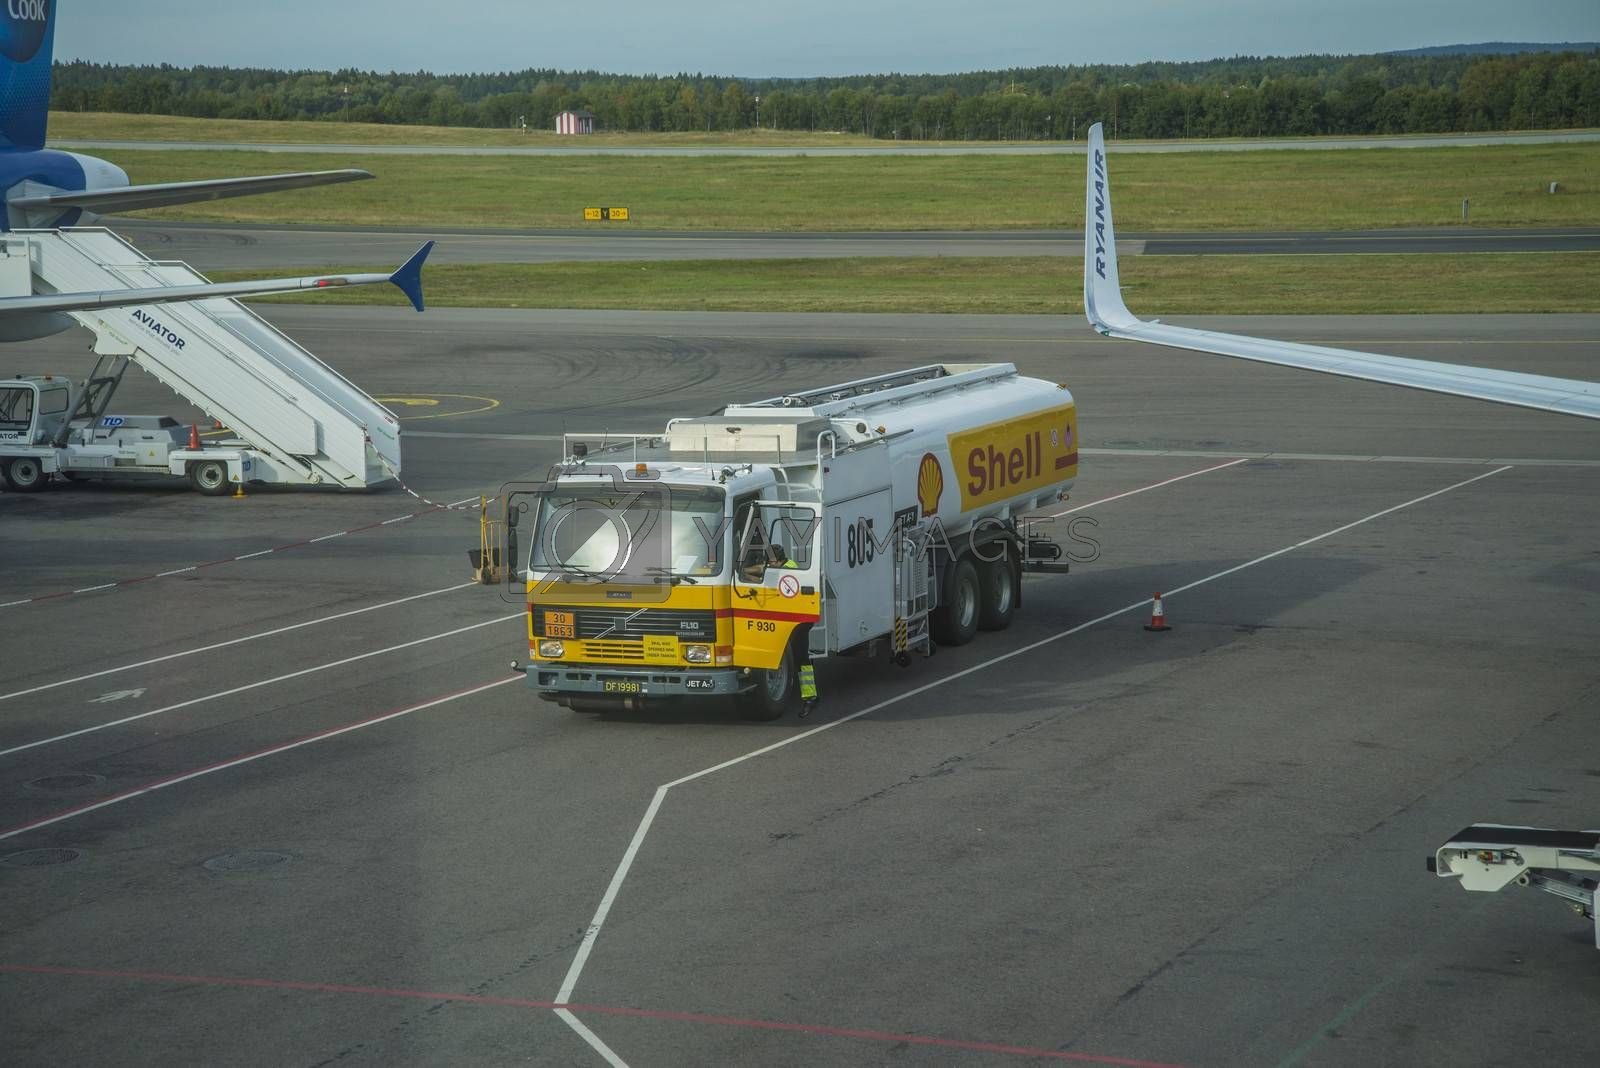 Fuel-truck at the airport. Image is shot at Moss Airport Rygge, Norway. September 2013.